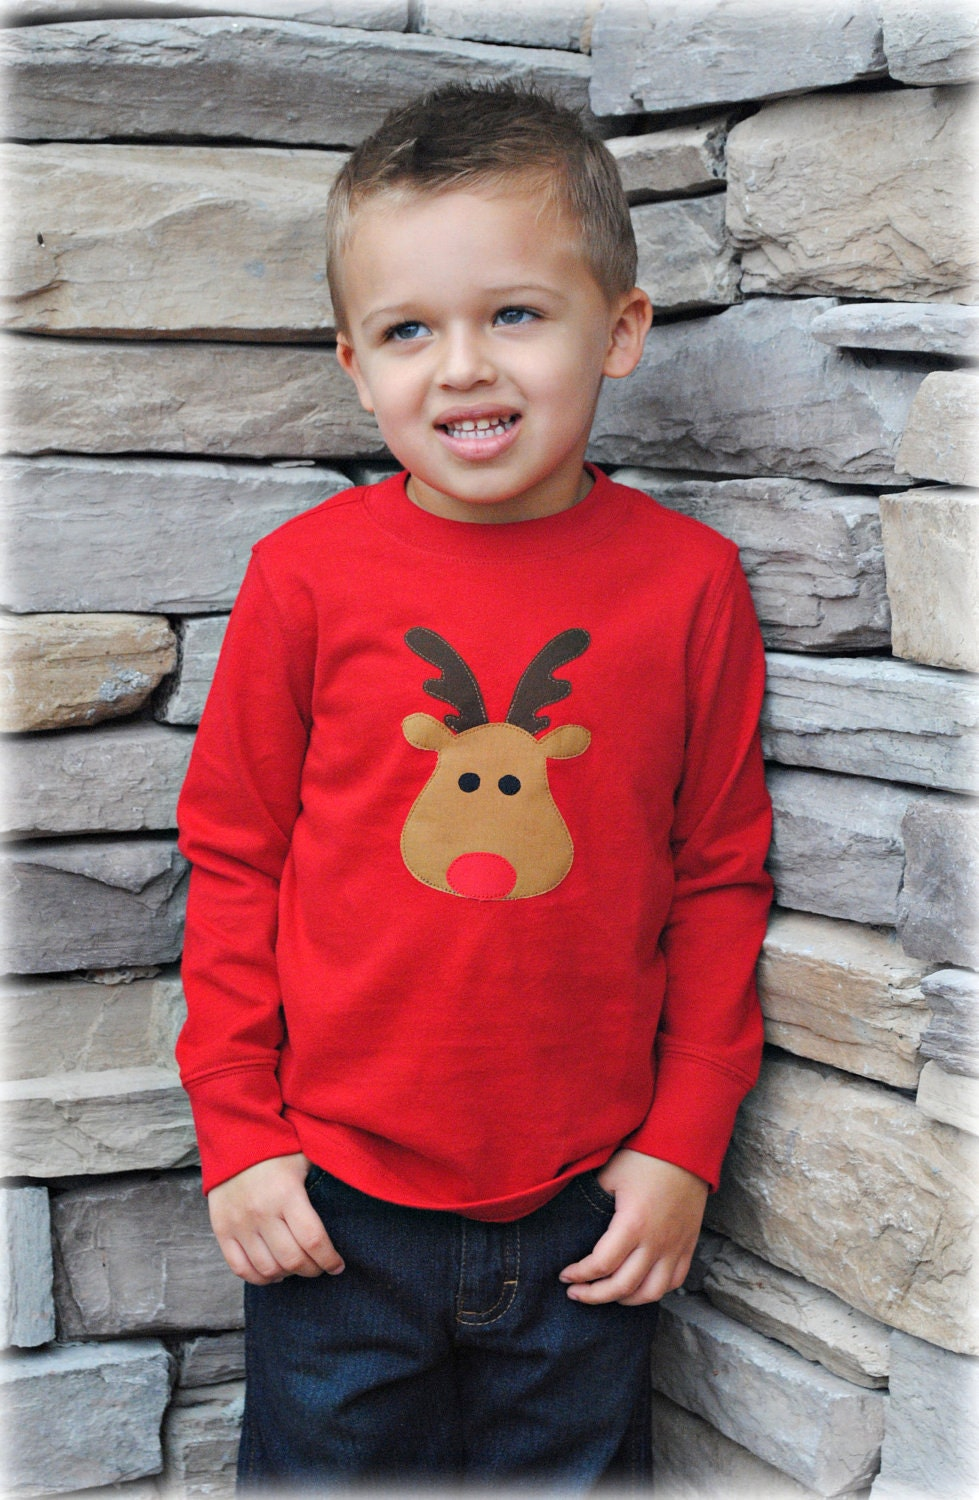 Find great deals on eBay for Boys Christmas Outfit in Baby Boys' Outfits and Sets (Newborn-5T). Shop with confidence.